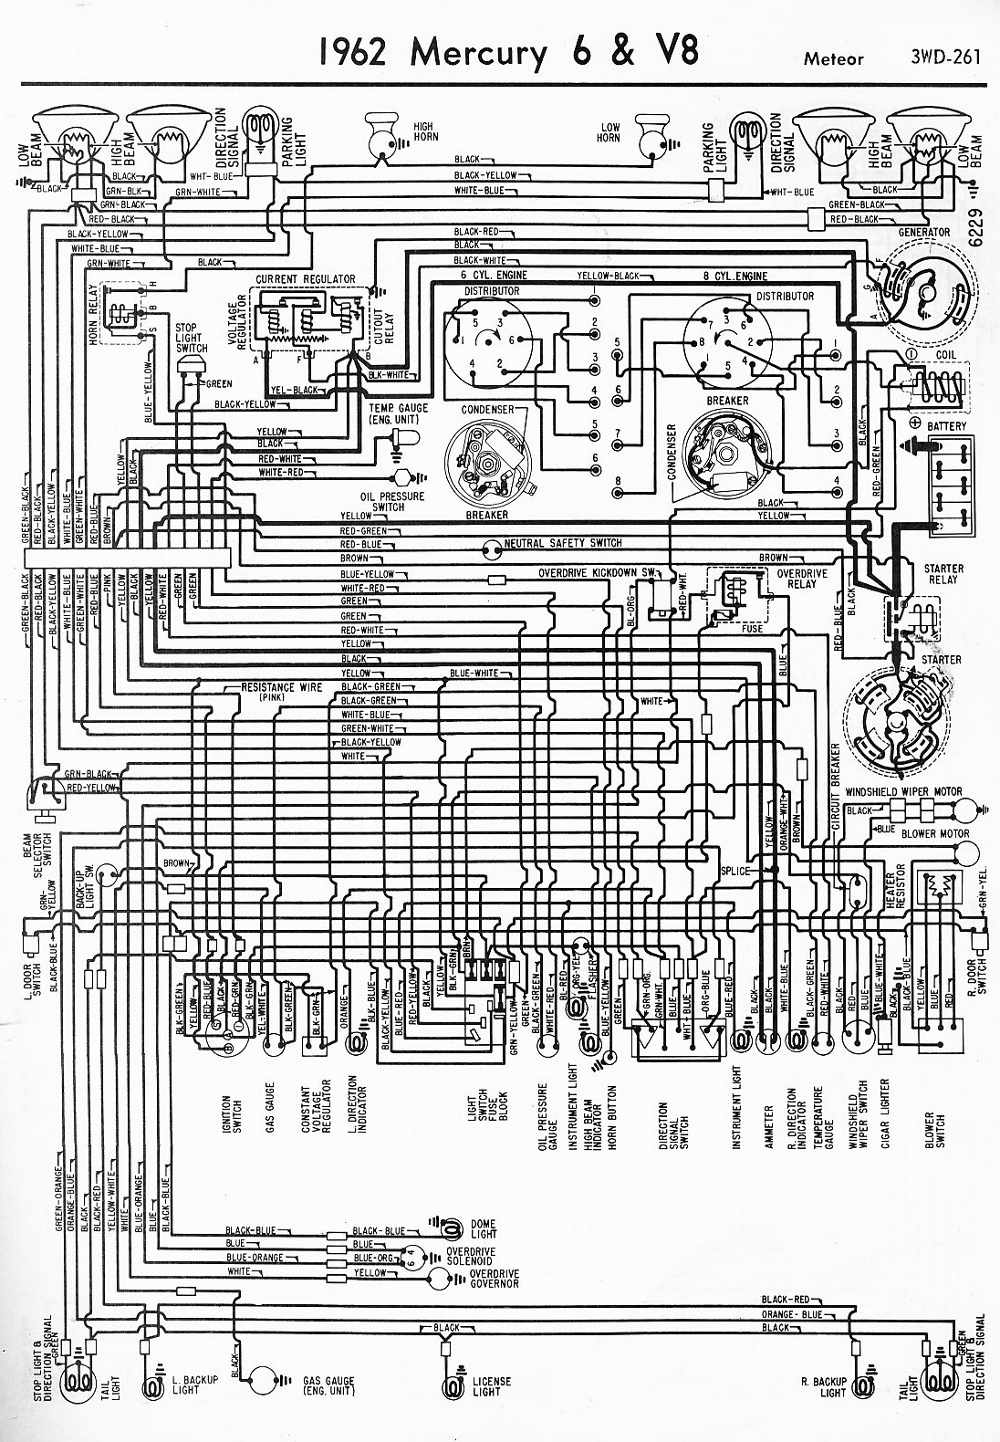 wiring diagrams 911: december 2011 6 wire alternator wiring diagram 6 wire schematic wiring diagram